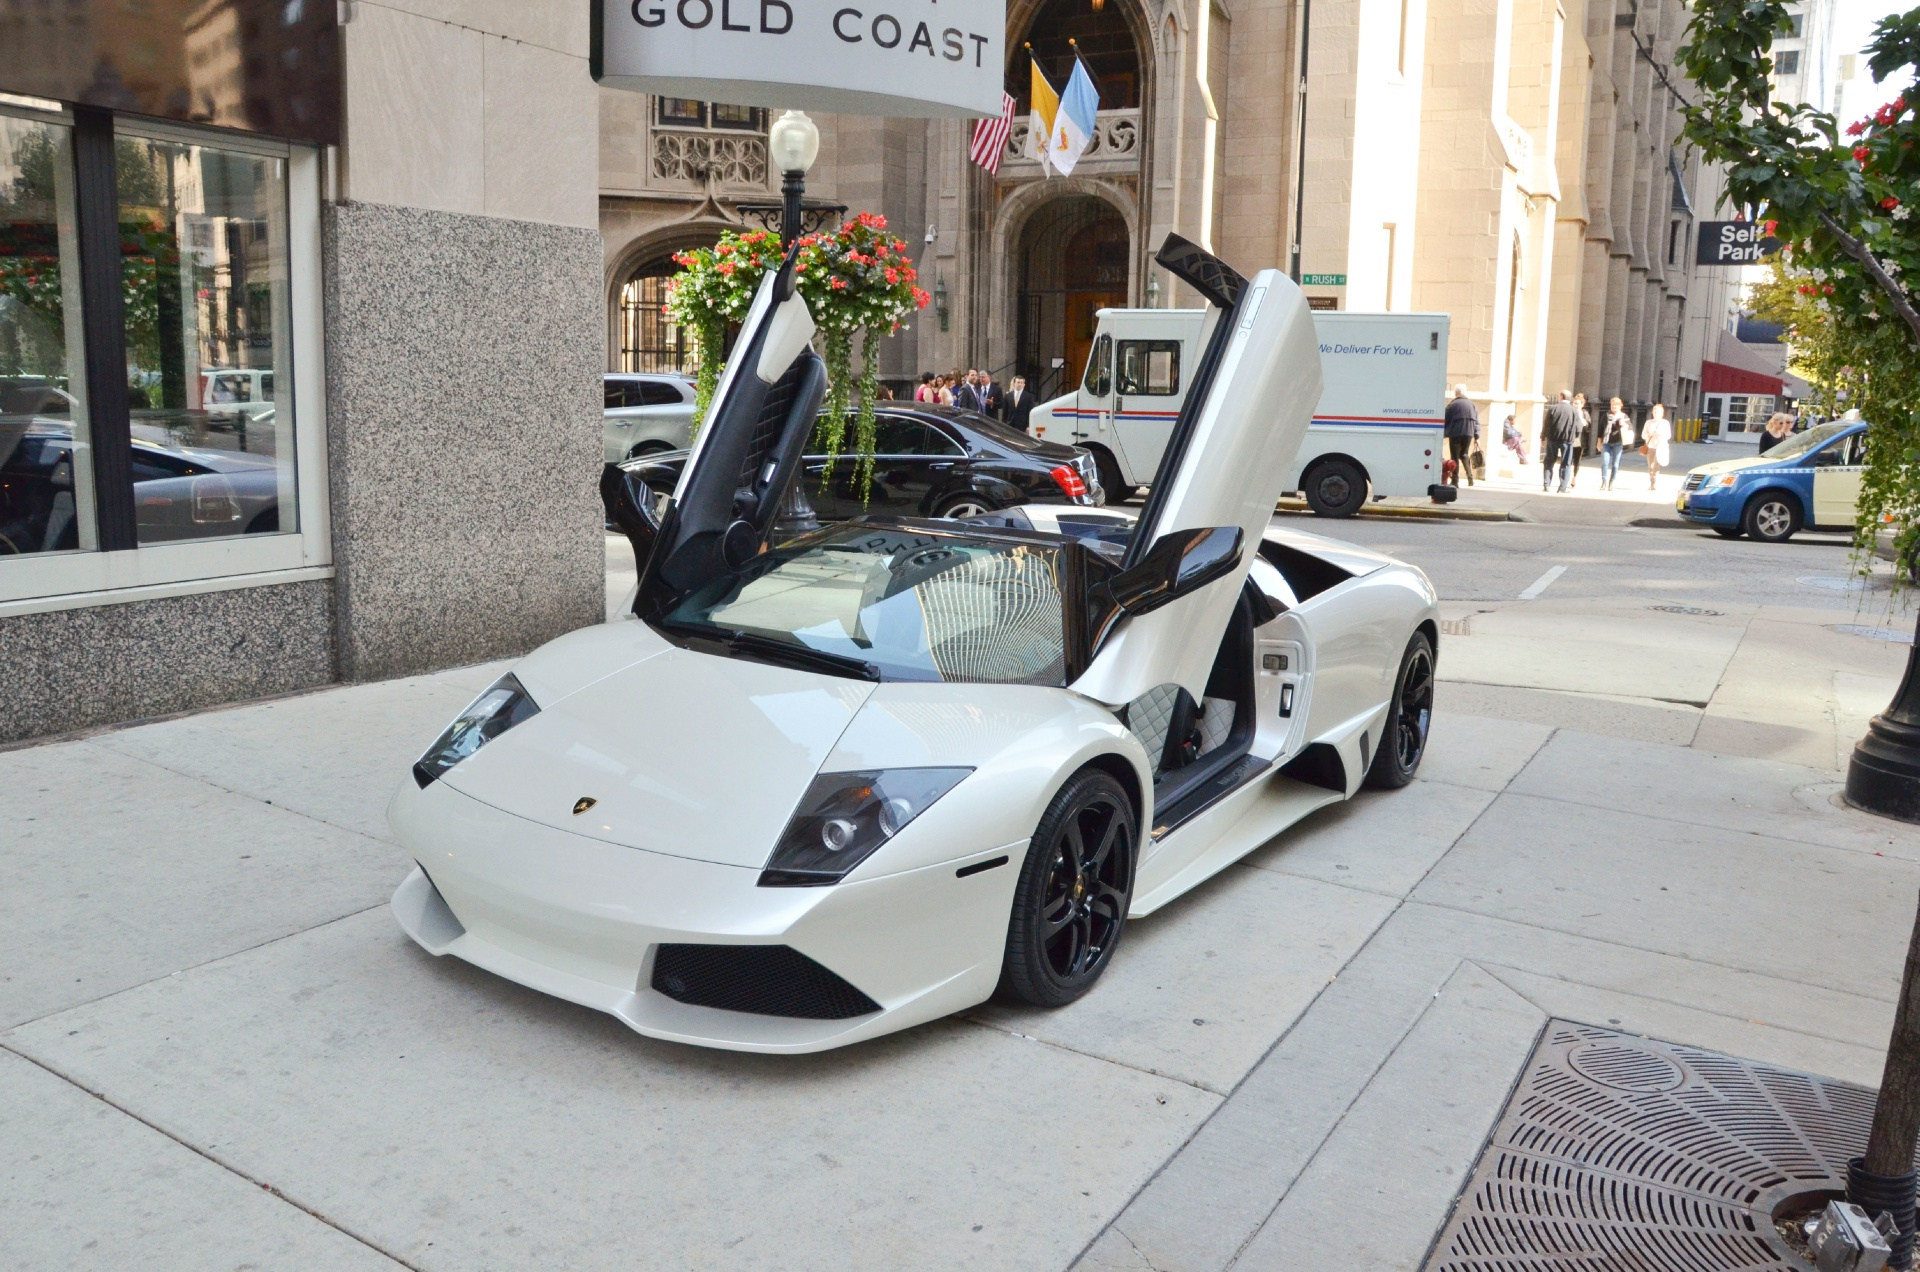 lago total for beautiful sale lamborghini lp murci in roadster on one edition cars versace murcielago white of jamesedition